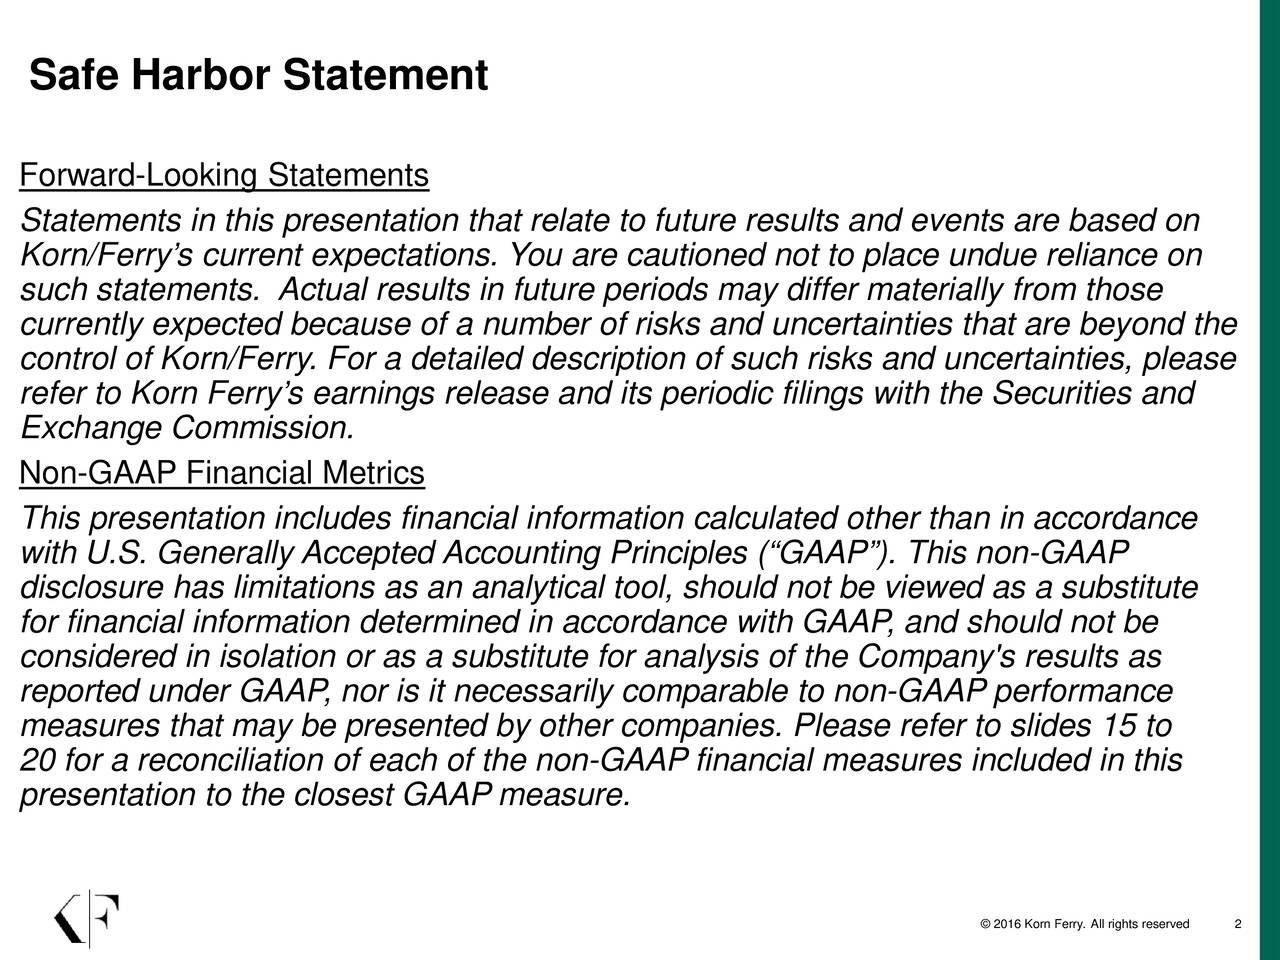 Forward-Looking Statements Statements in this presentation that relate to future results and events are based on Korn/Ferrys current expectations. You are cautioned not to place undue reliance on such statements. Actual results in future periods may differ materially from those currently expected because of a number of risks and uncertainties that are beyond the control of Korn/Ferry. For a detailed description of such risks and uncertainties, please refer to Korn Ferrys earnings release and its periodic filings with the Securities and Exchange Commission. Non-GAAP Financial Metrics This presentation includes financial information calculated other than in accordance with U.S. Generally Accepted Accounting Principles (GAAP). This non-GAAP disclosure has limitations as an analytical tool, should not be viewed as a substitute for financial information determined in accordance with GAAP, and should not be considered in isolation or as a substitute for analysis of the Company's results as reported under GAAP, nor is it necessarily comparable to non-GAAP performance measures that may be presented by other companies. Please refer to slides15 to 20 for a reconciliation of each of the non-GAAP financial measures included in this presentation to the closest GAAP measure. 2016 Korn Ferry. 2ll rights reserved